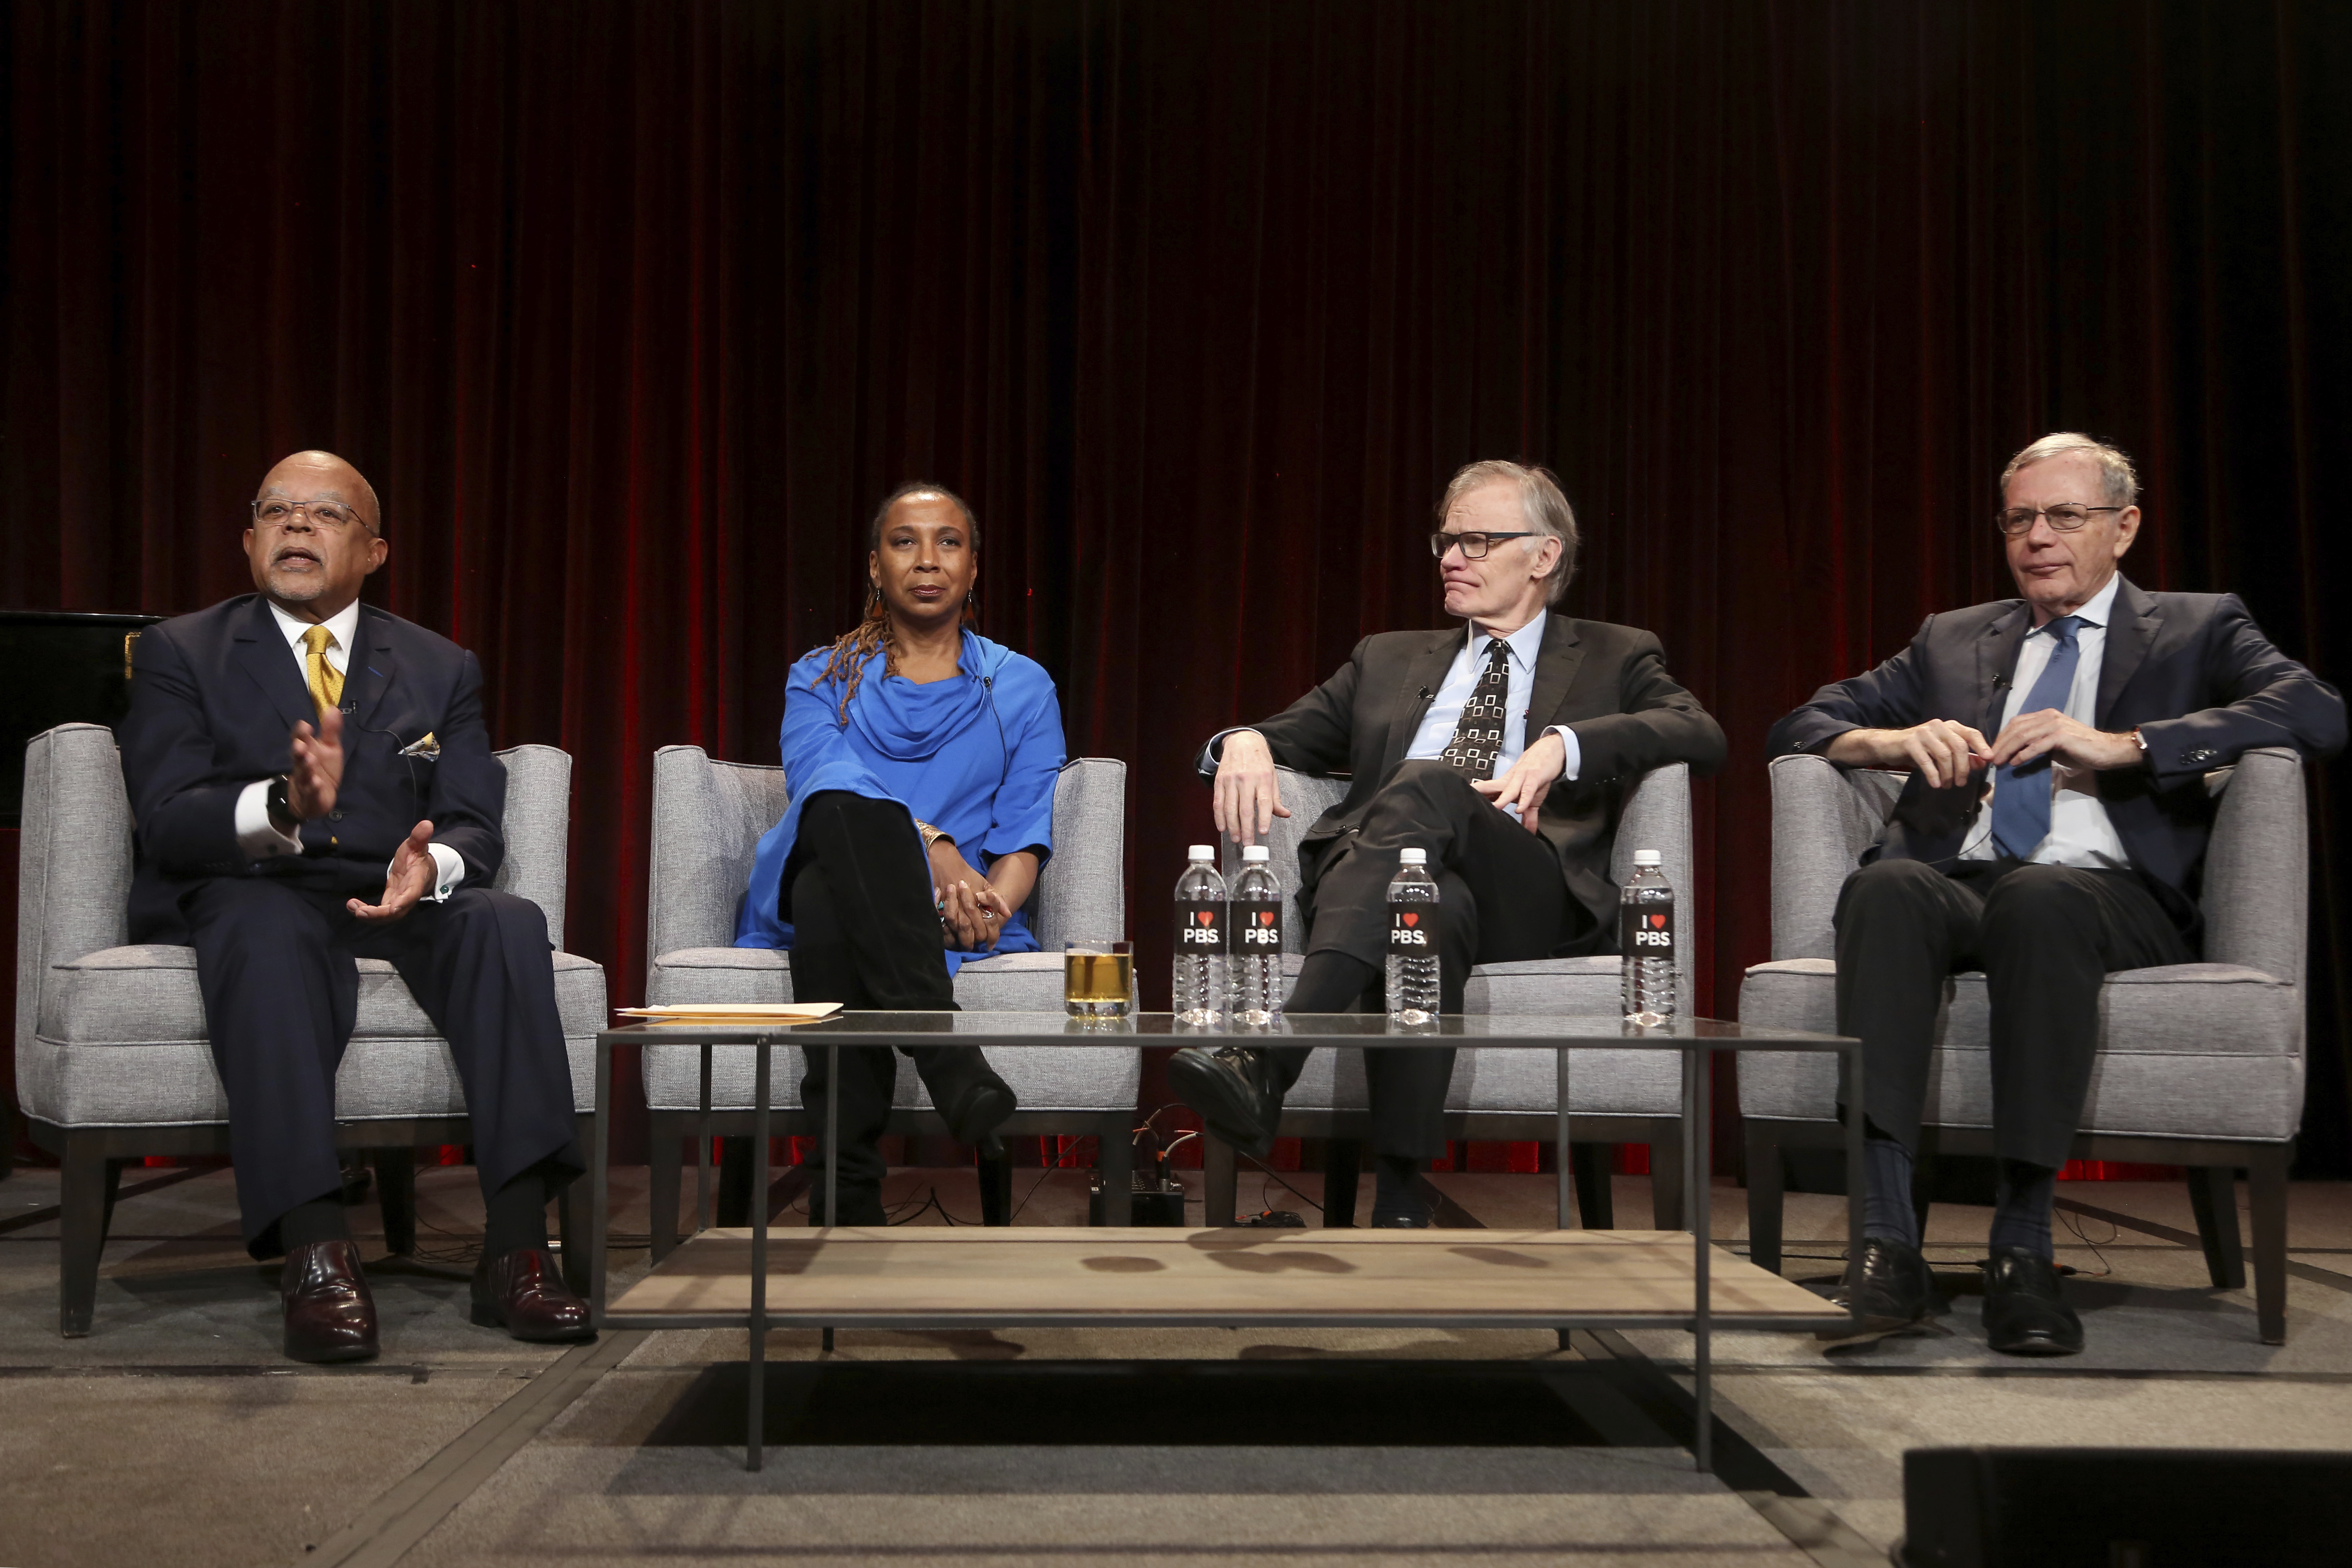 """From left, Henry Louis Gates Jr., Kimberle Crenshaw, David W. Blight and Eric Foner participate in the 'Reconstruction: America After Civil War"""" panel during the PBS presentation at the Television Critics Association Winter Press Tour, Feb. 2, 2019, ..."""